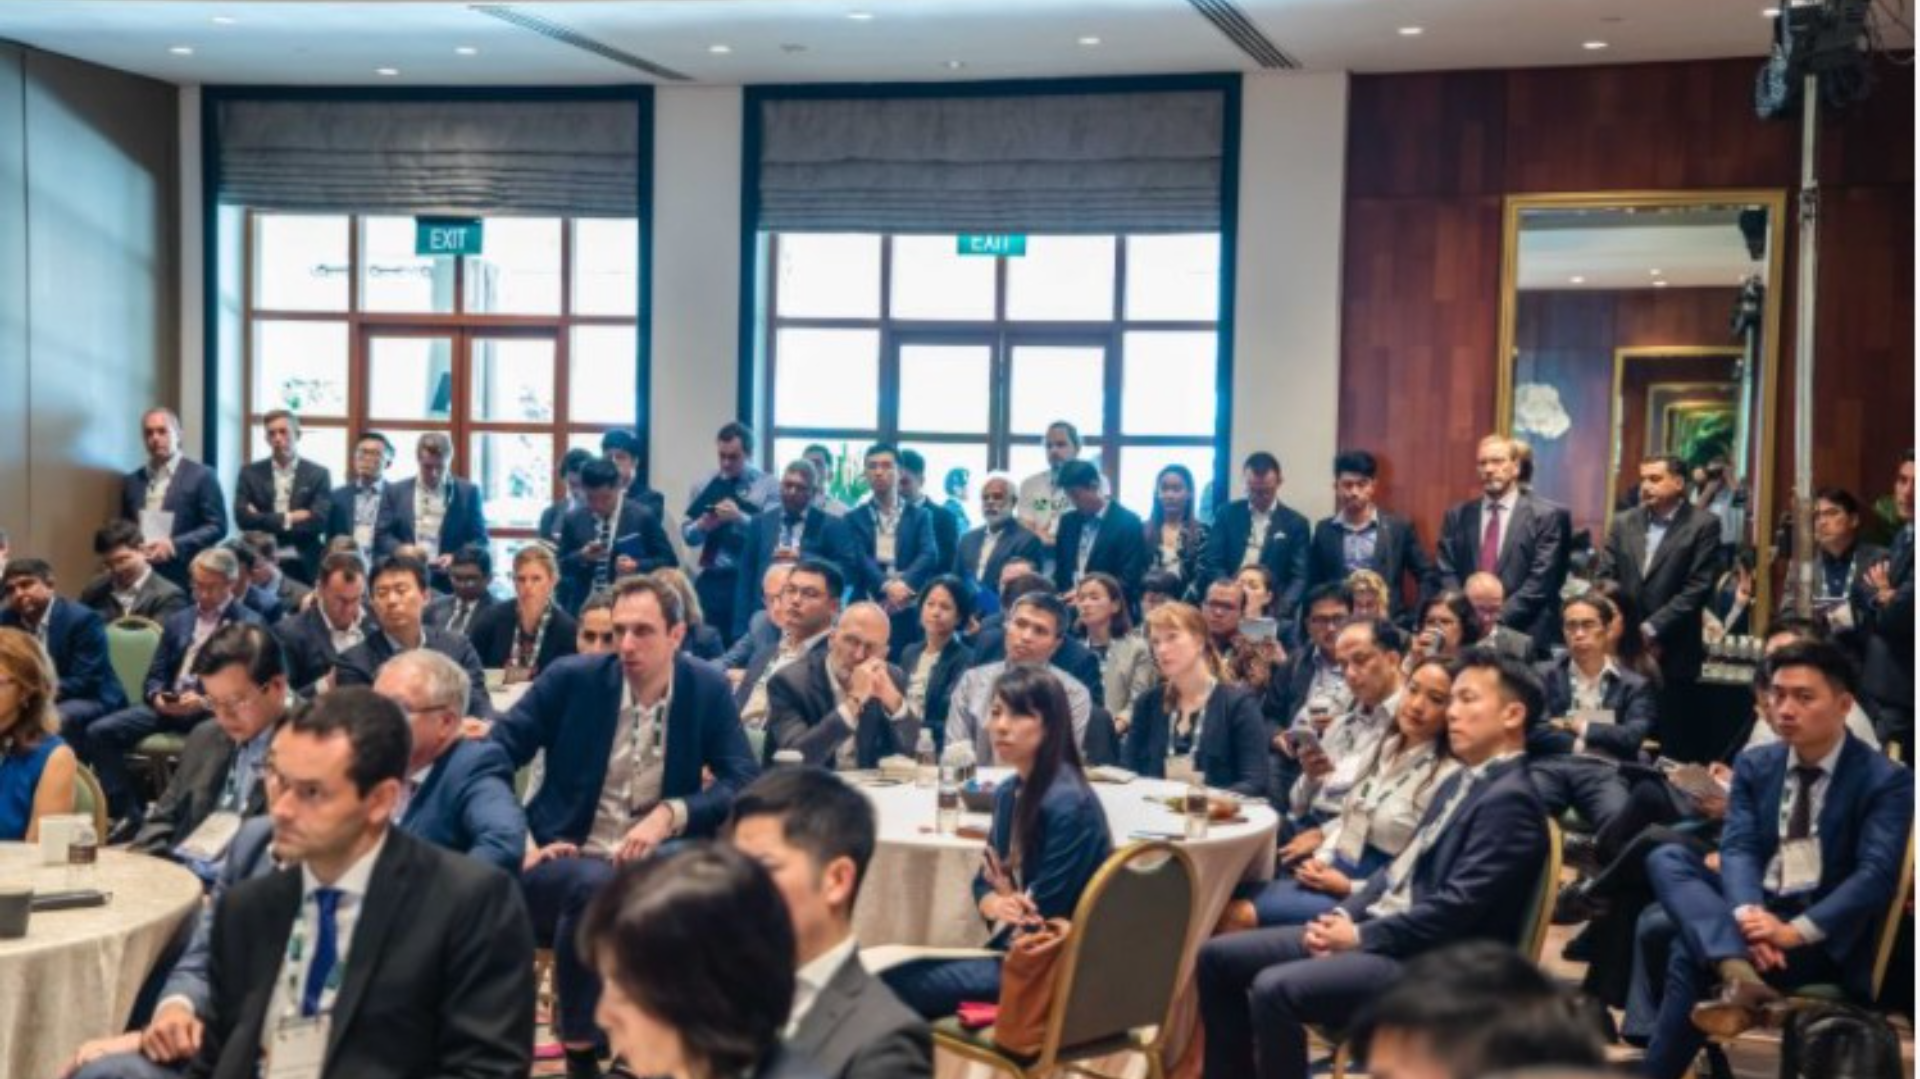 Keynote interview: An update from the AIIB